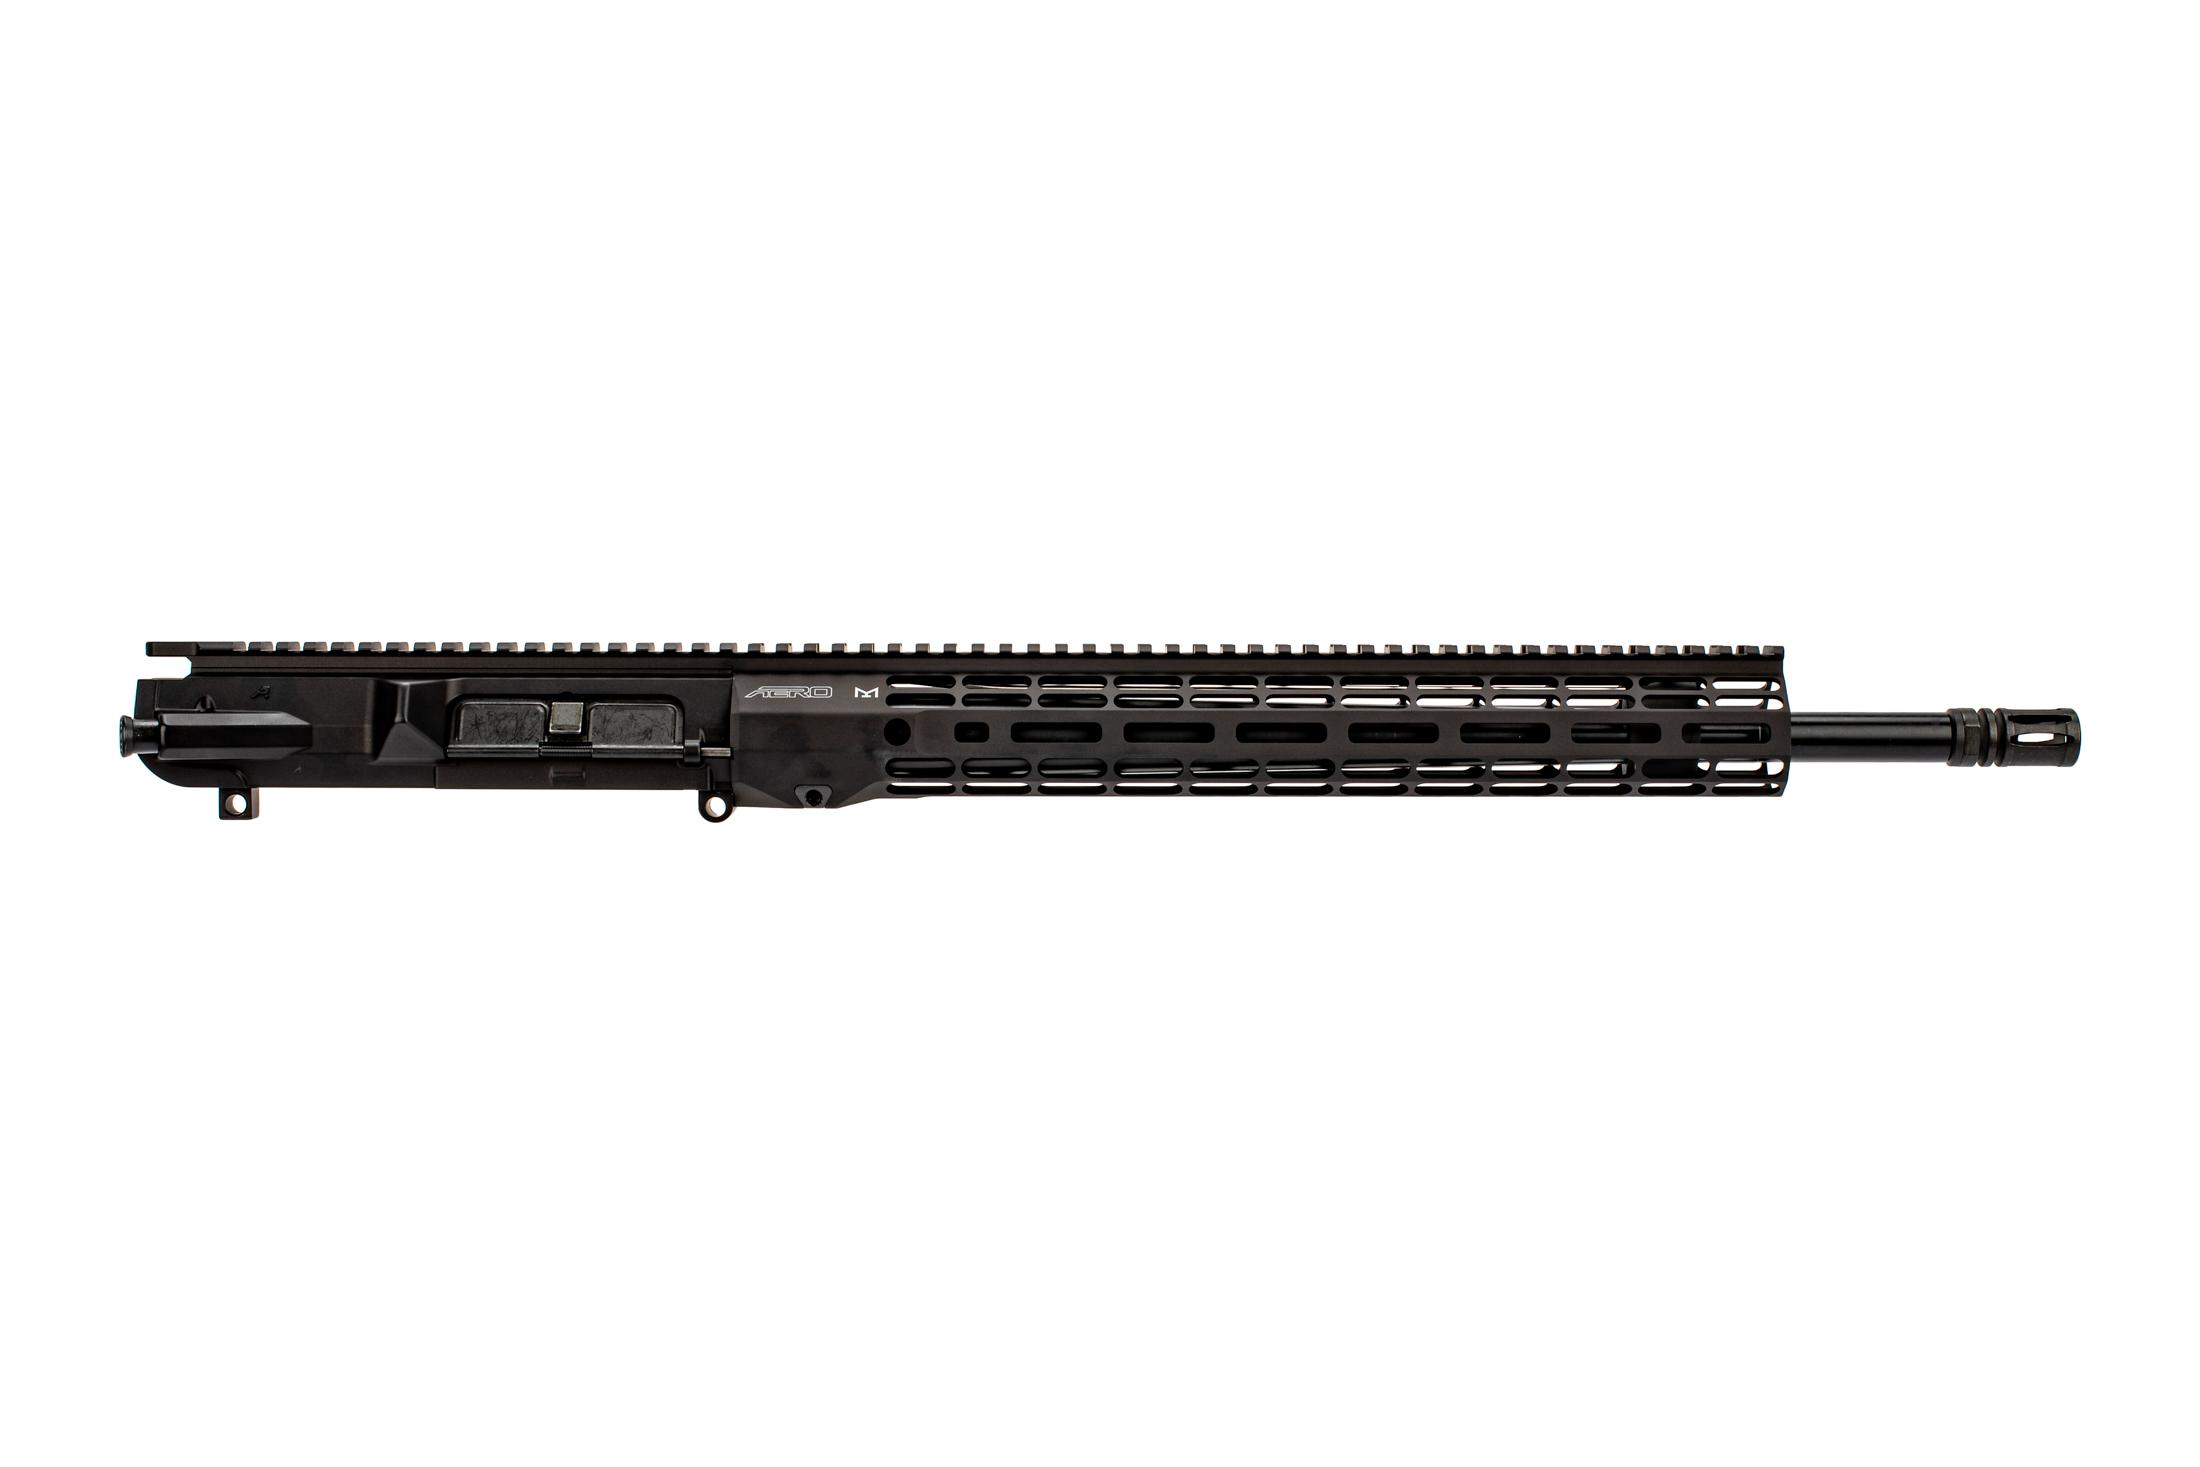 Aero Precision 18 Mid-length black AR10 upper receiver with Atlas R-ONE M-LOK handguard and mid-length gas system.